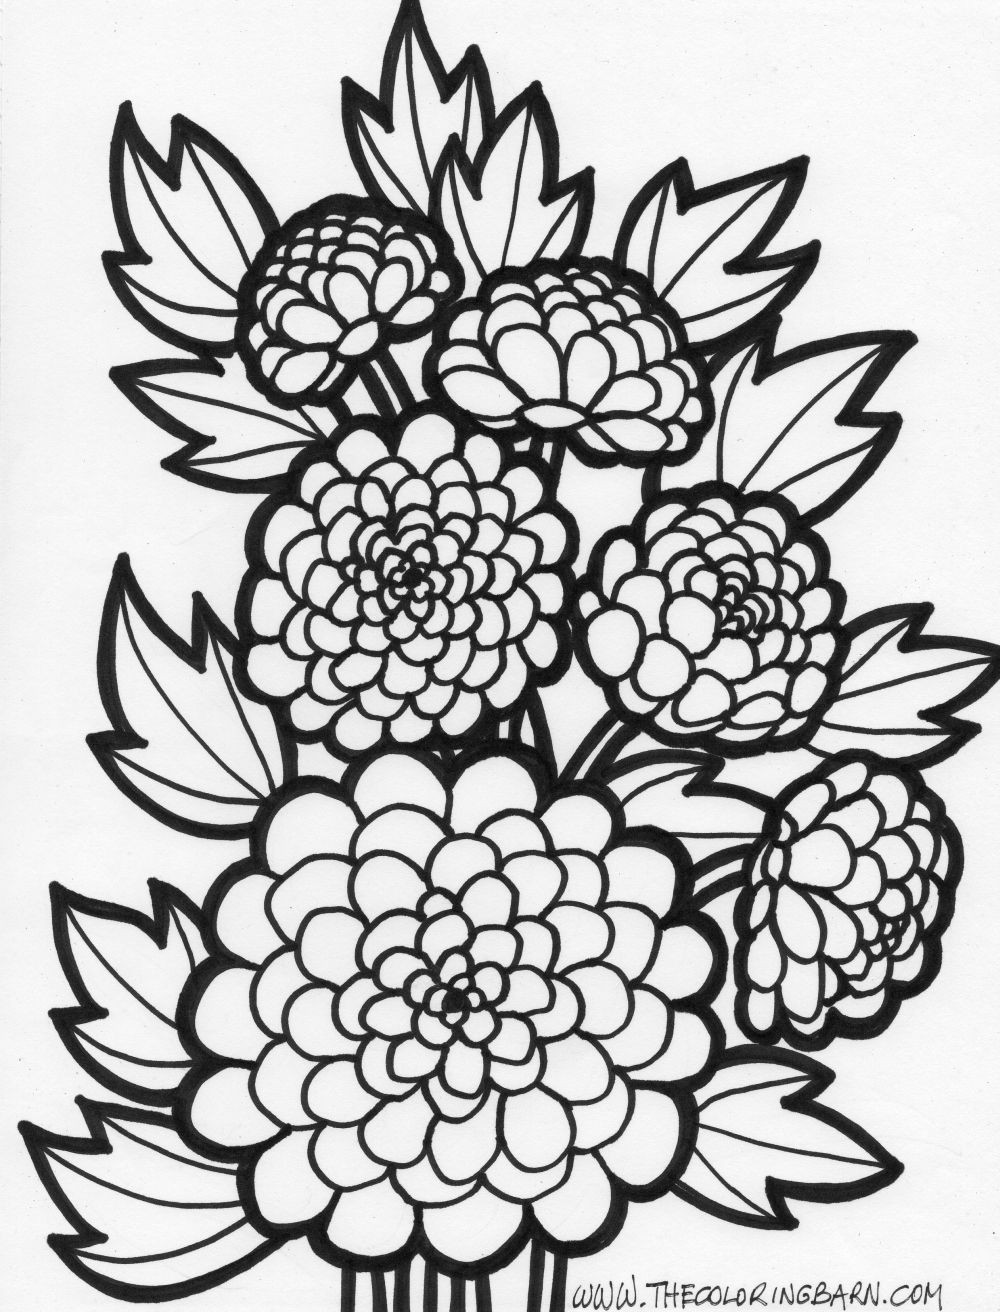 Flower Coloring Pages For Adults Printable  coloring pages of flowers for teenagers difficult